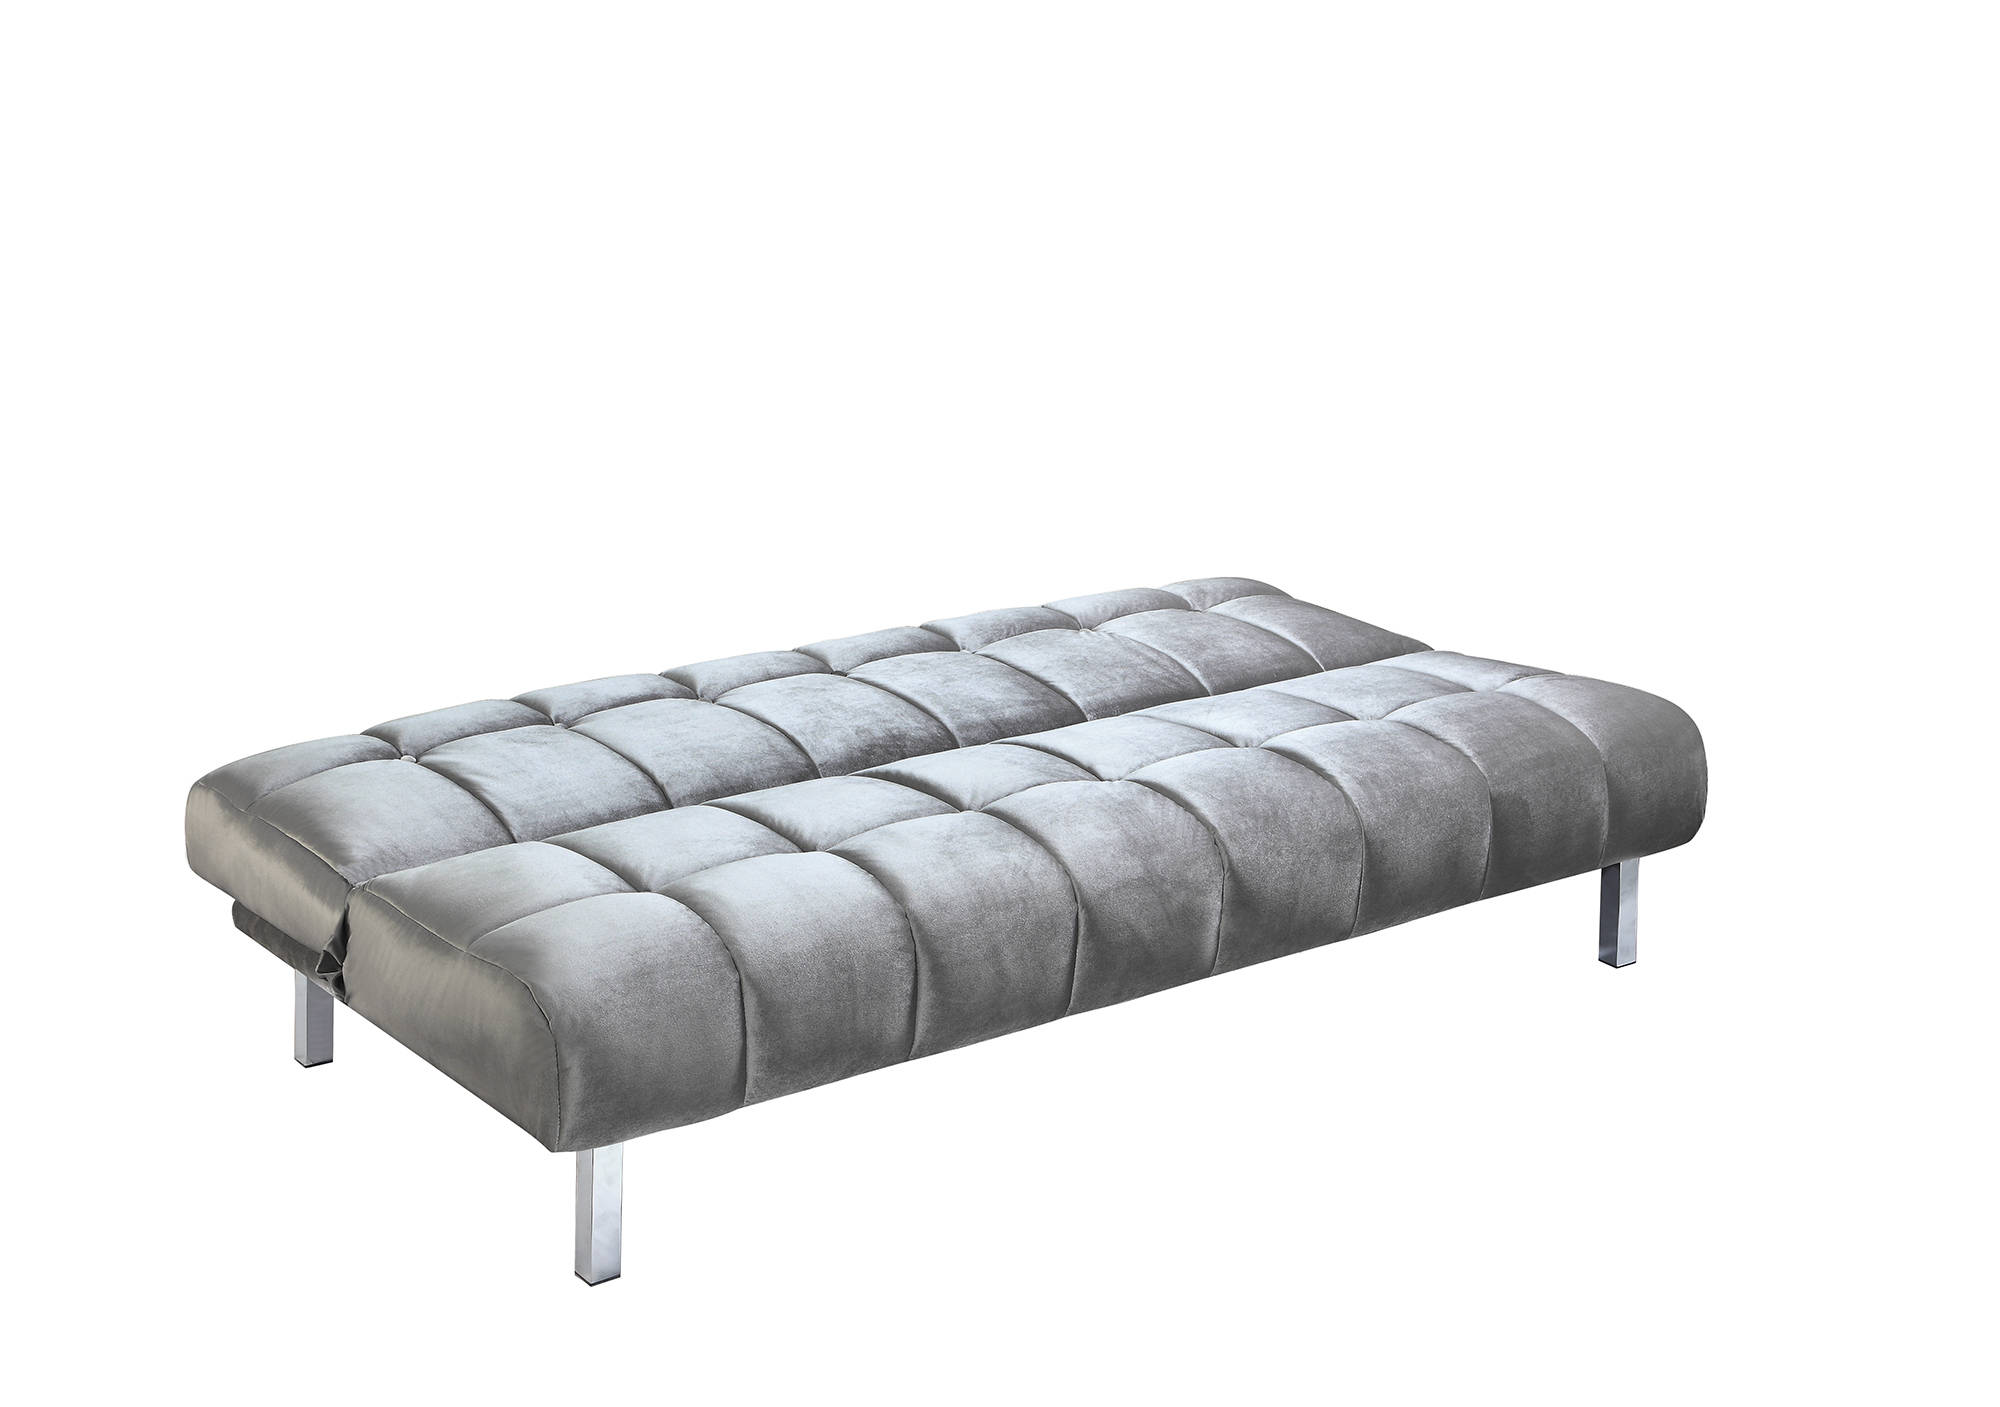 Surprising Coaster Furniture Grey Velvet Cushion Tufted Sofa Bed Gamerscity Chair Design For Home Gamerscityorg